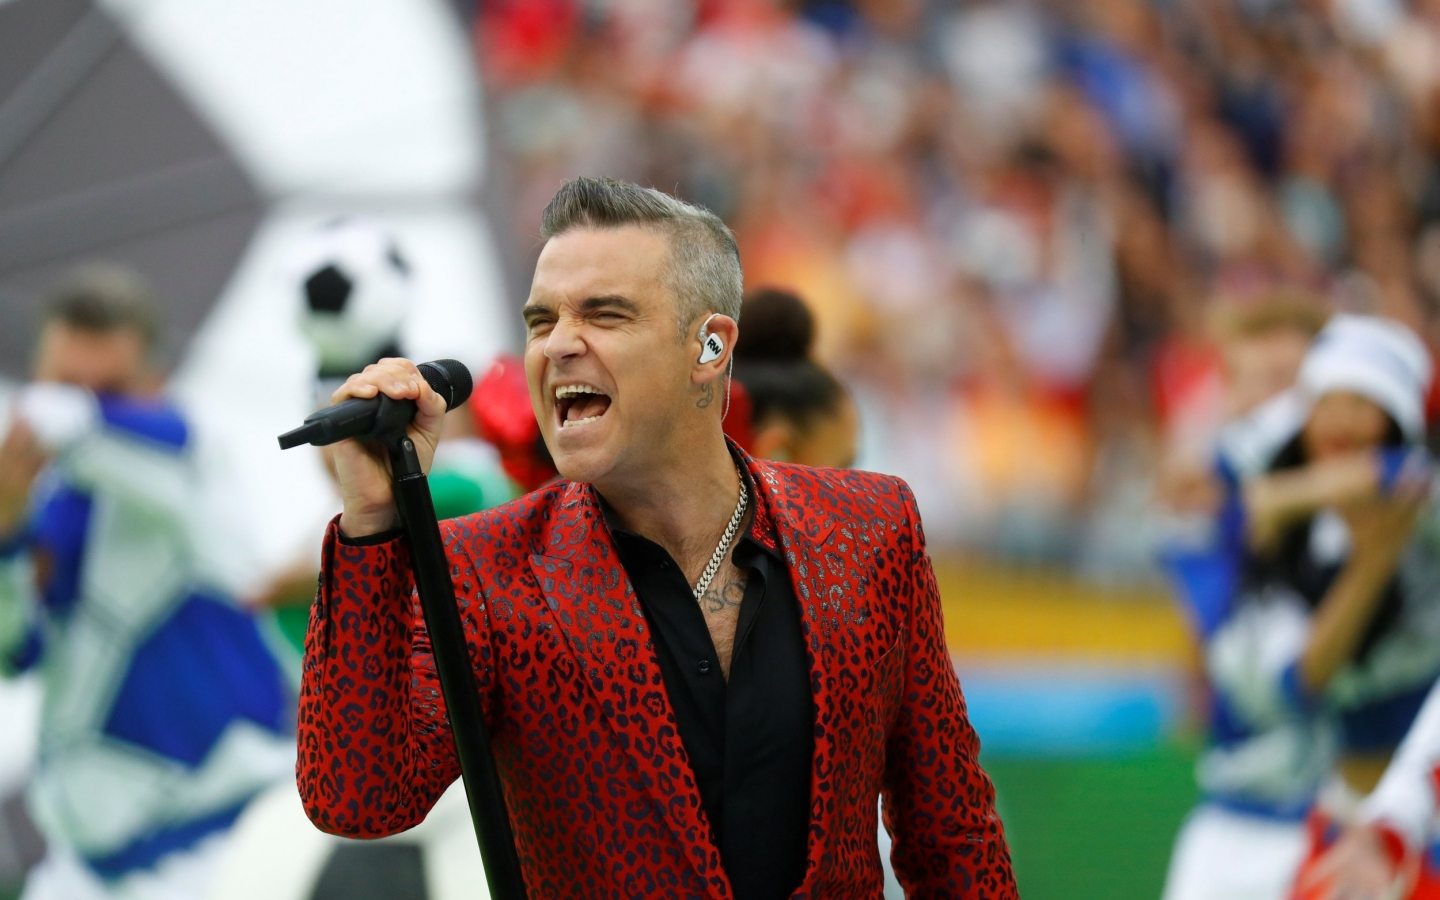 Robbie Williams En Rusia 2018 Hd 1440x900